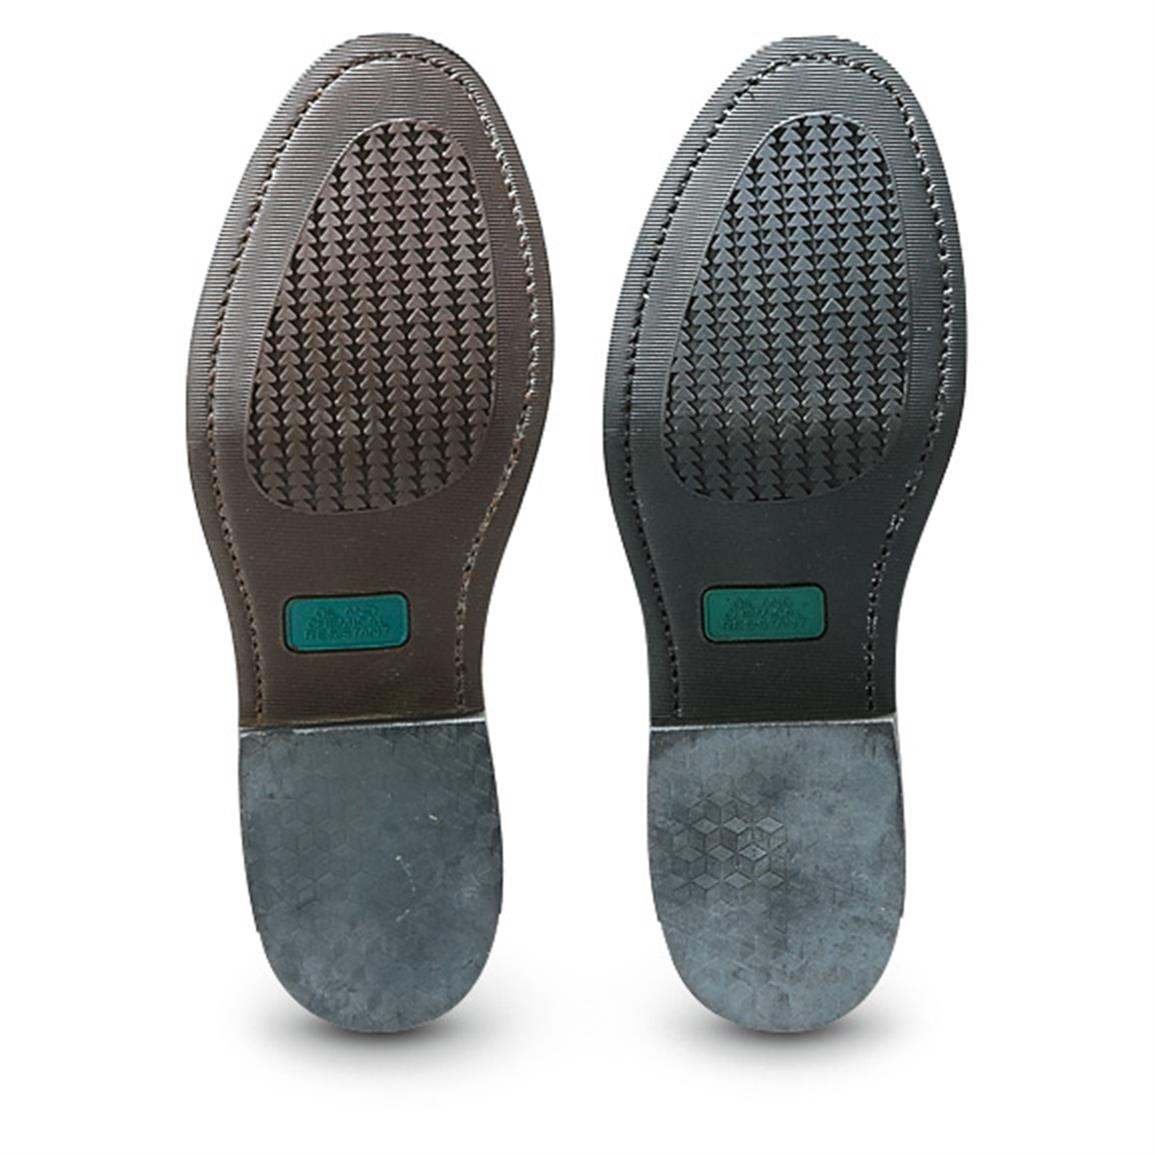 Long-wearing, oil and chemical-resistant rubber outsole